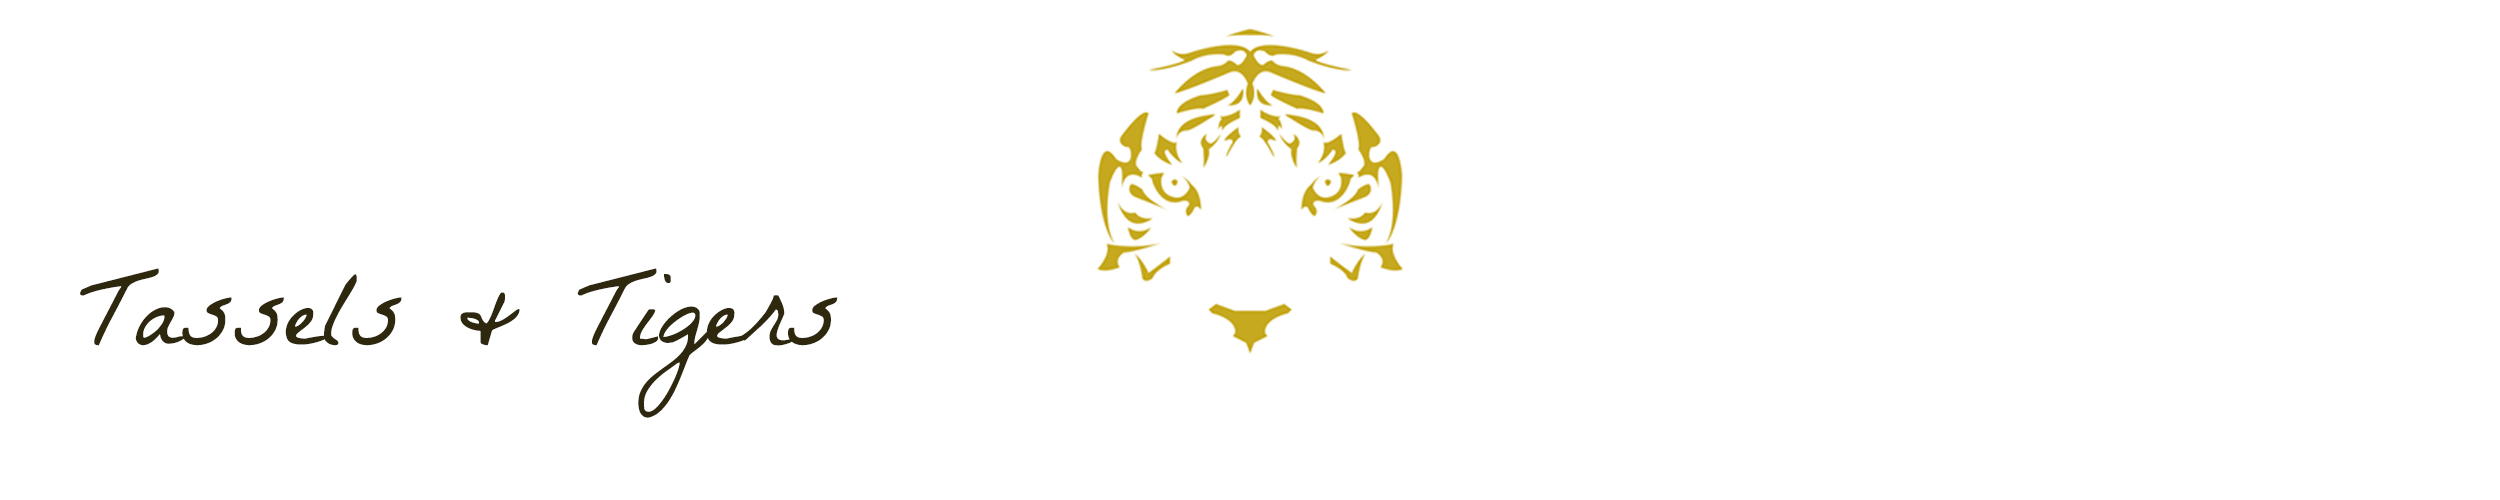 Tassels & Tigers Decor and Design Blog and Decorator in Johannesburg, South Africa, giving away tickets to Decorex CT 2018